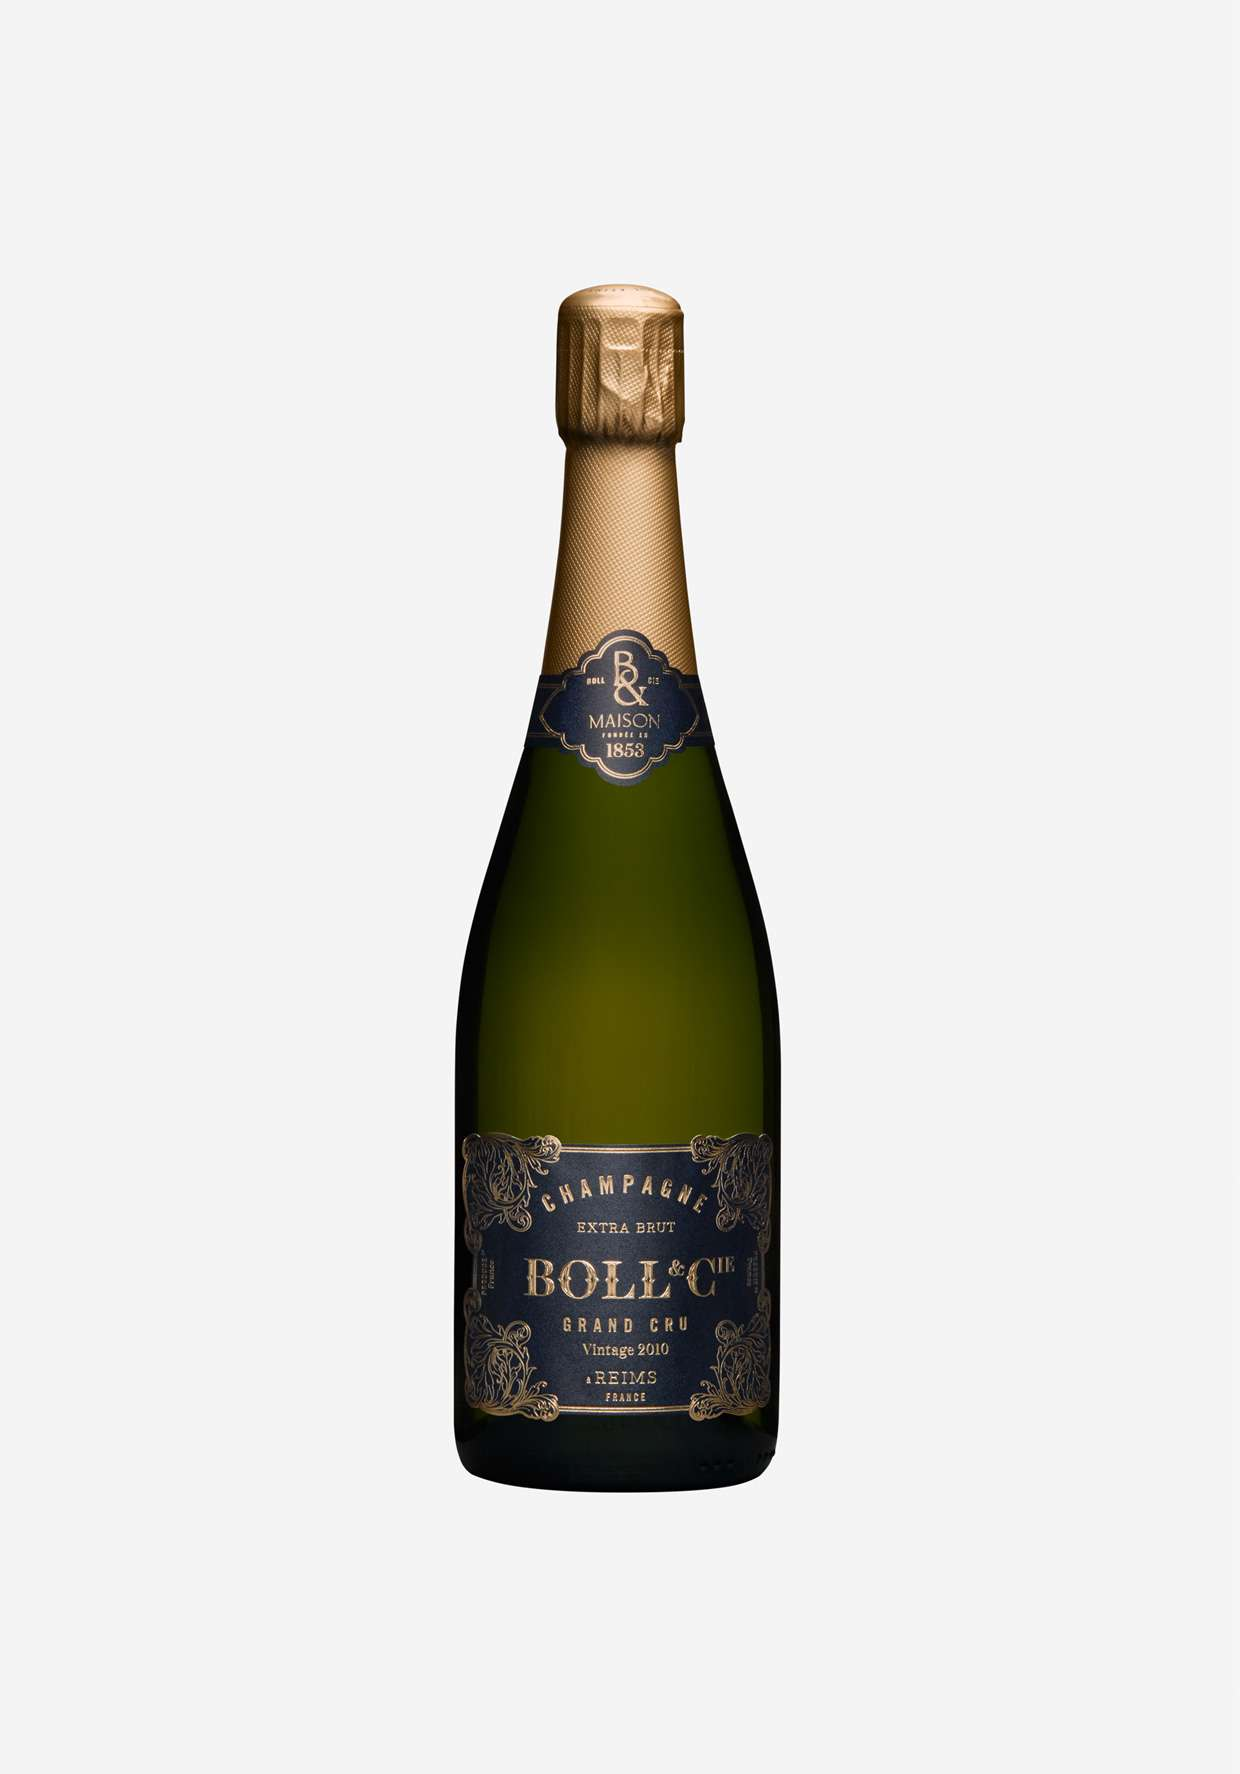 A close-up of a bottle of Grand Cru Champagne from Boll et Cie